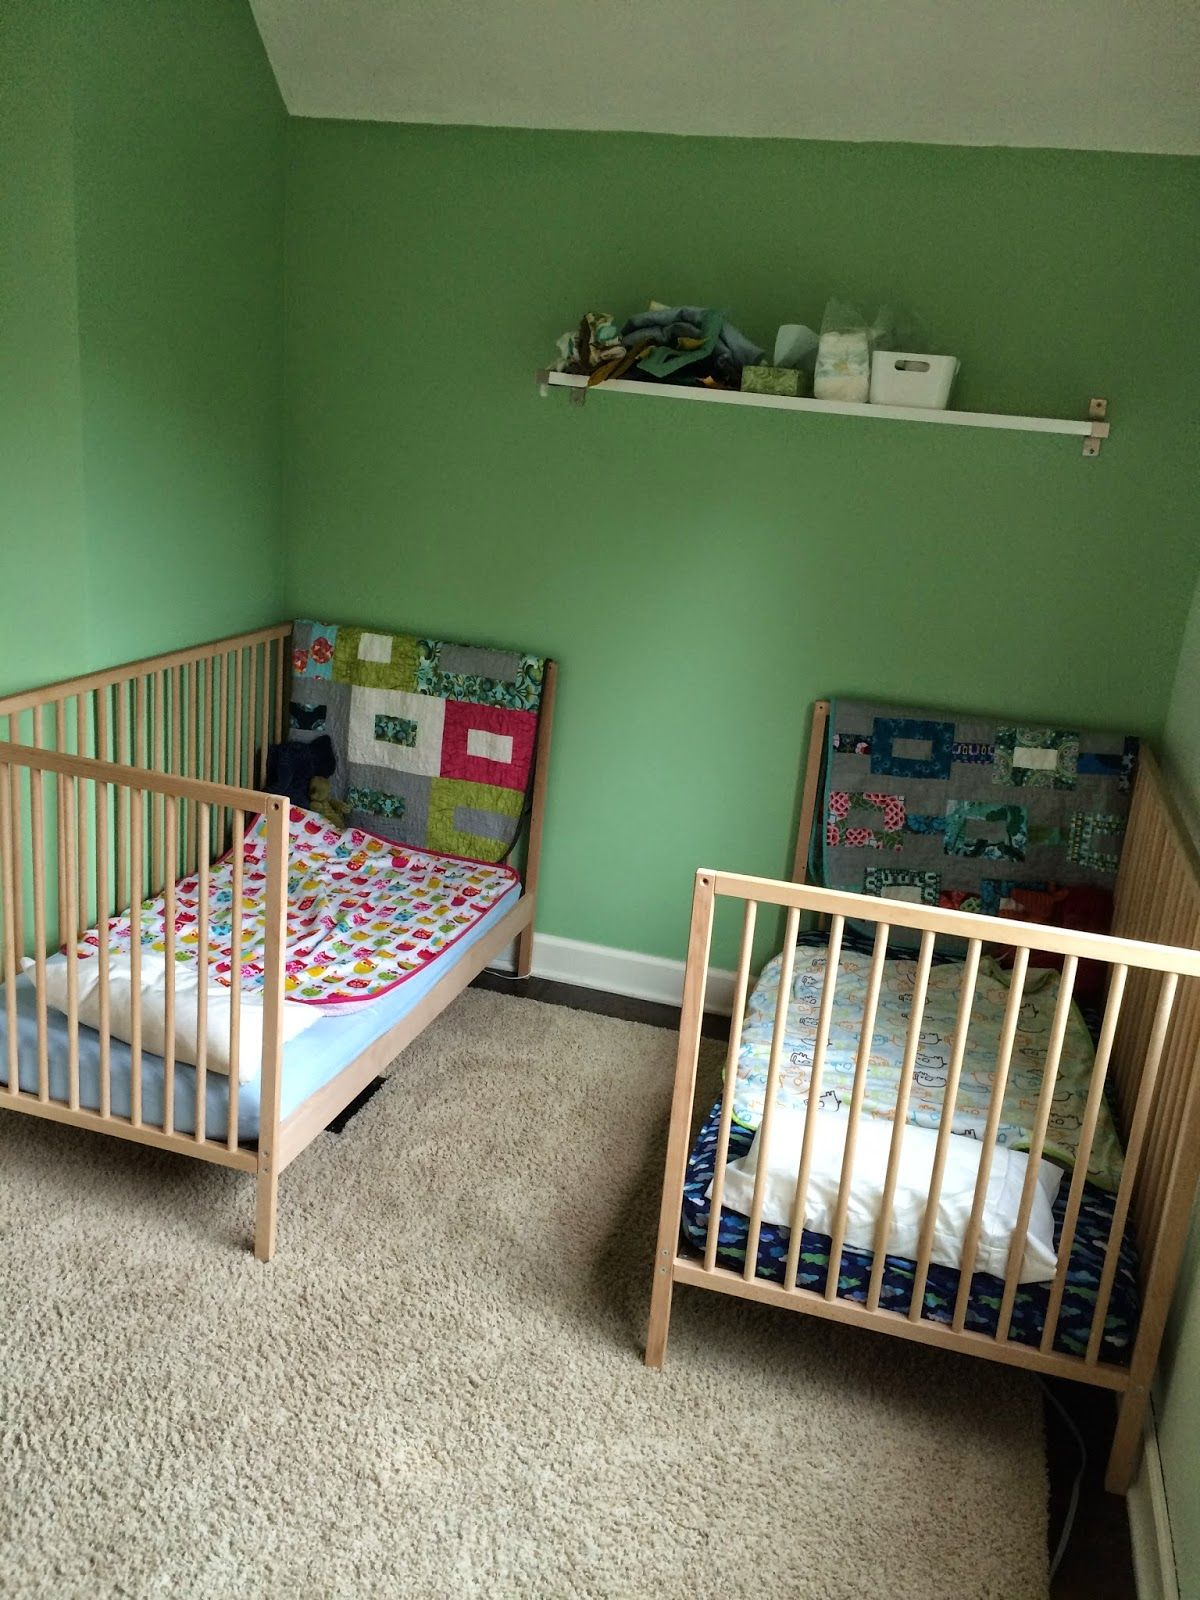 When We Found Out We Were Having Surprise Twins Almost Two Years Ago We Decided To Go With The Ikea Sniglar Cribs Be Ikea Crib Ikea Sniglar Crib Ikea Crib Hack